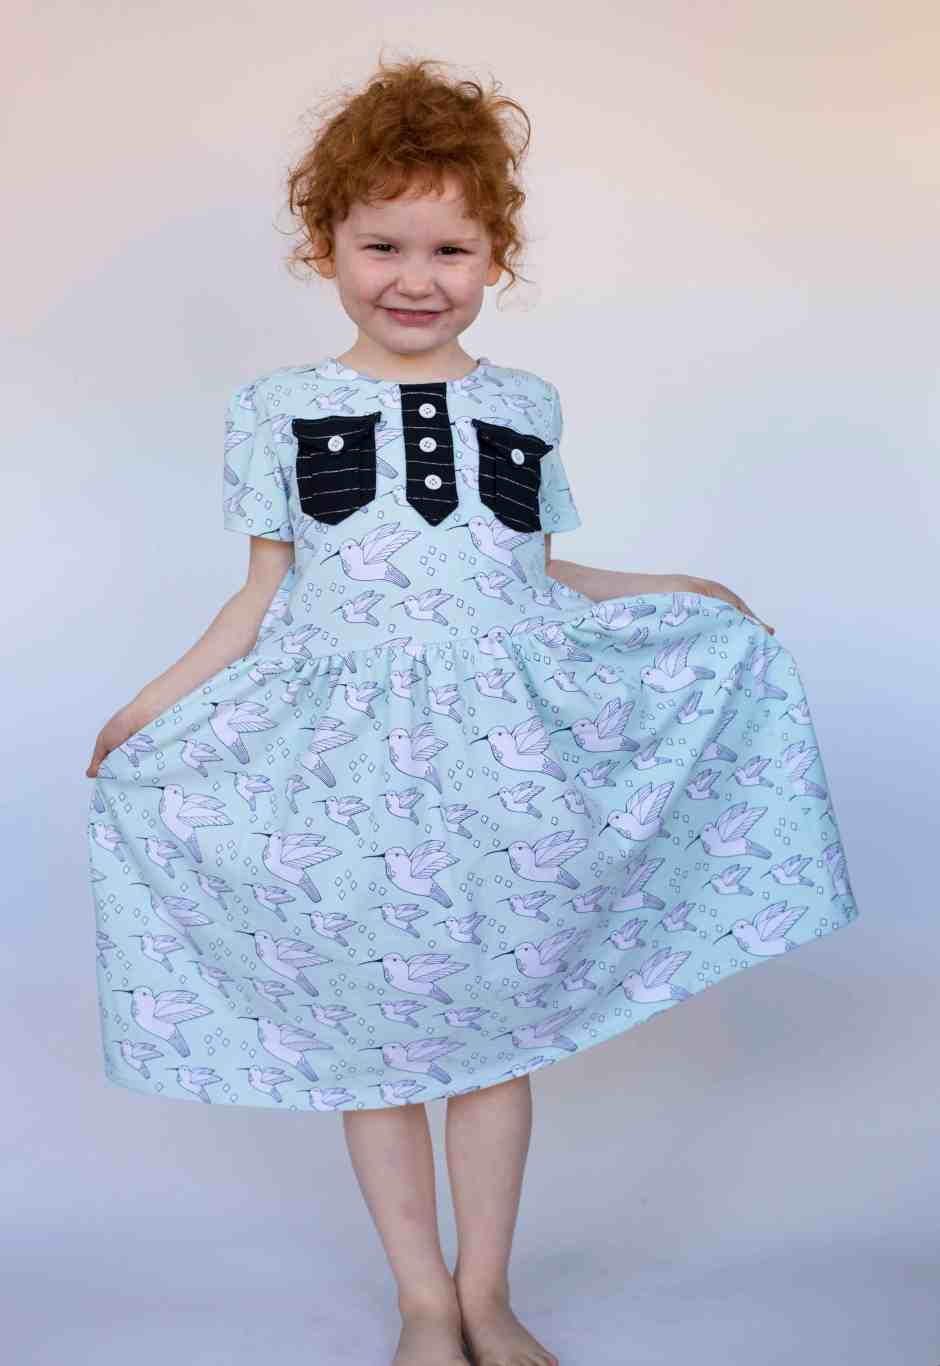 girl-pocket-placket-dress